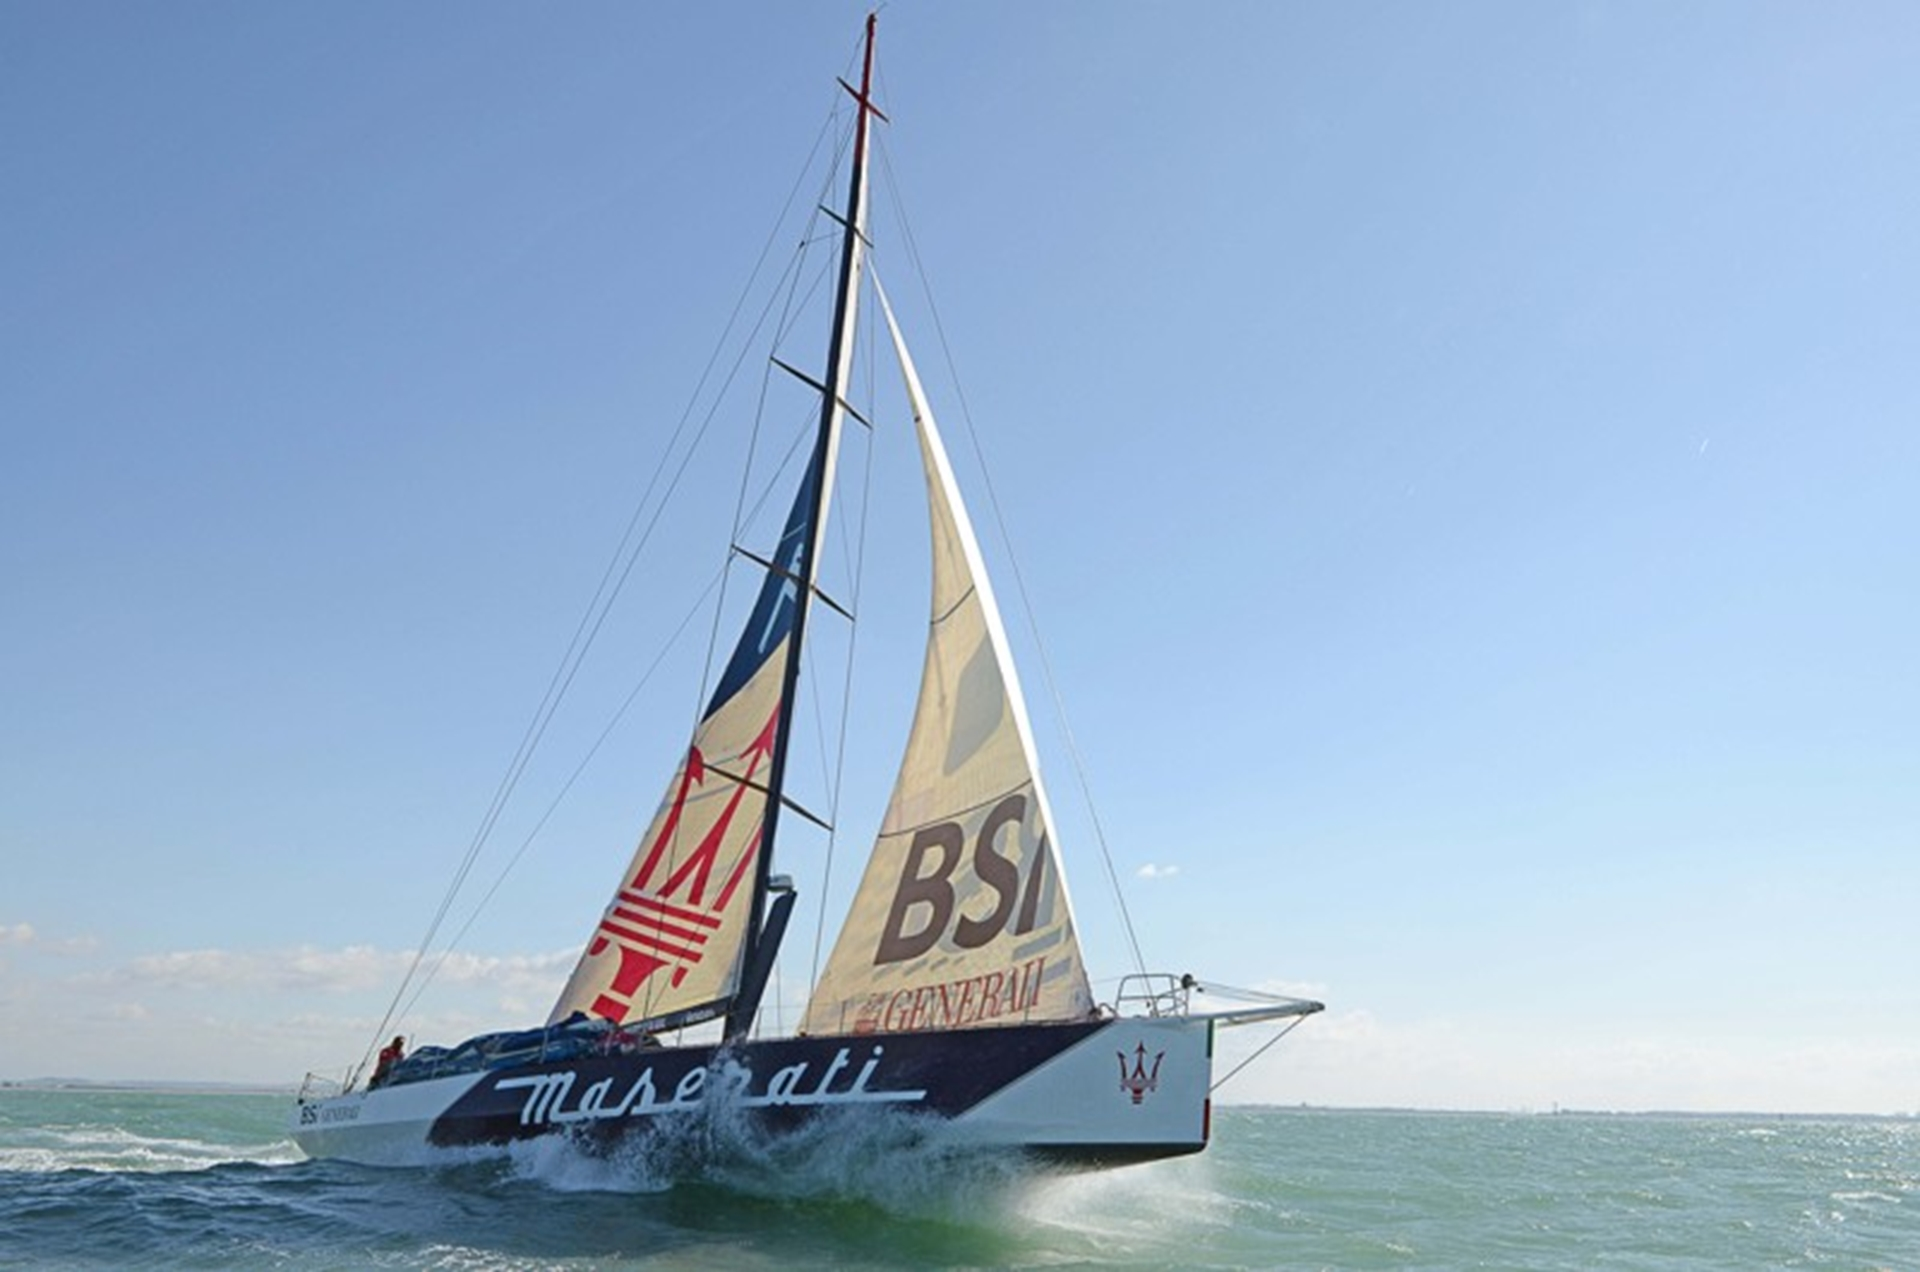 The Maserati Boat on the start line from Cadiz to San Salvador